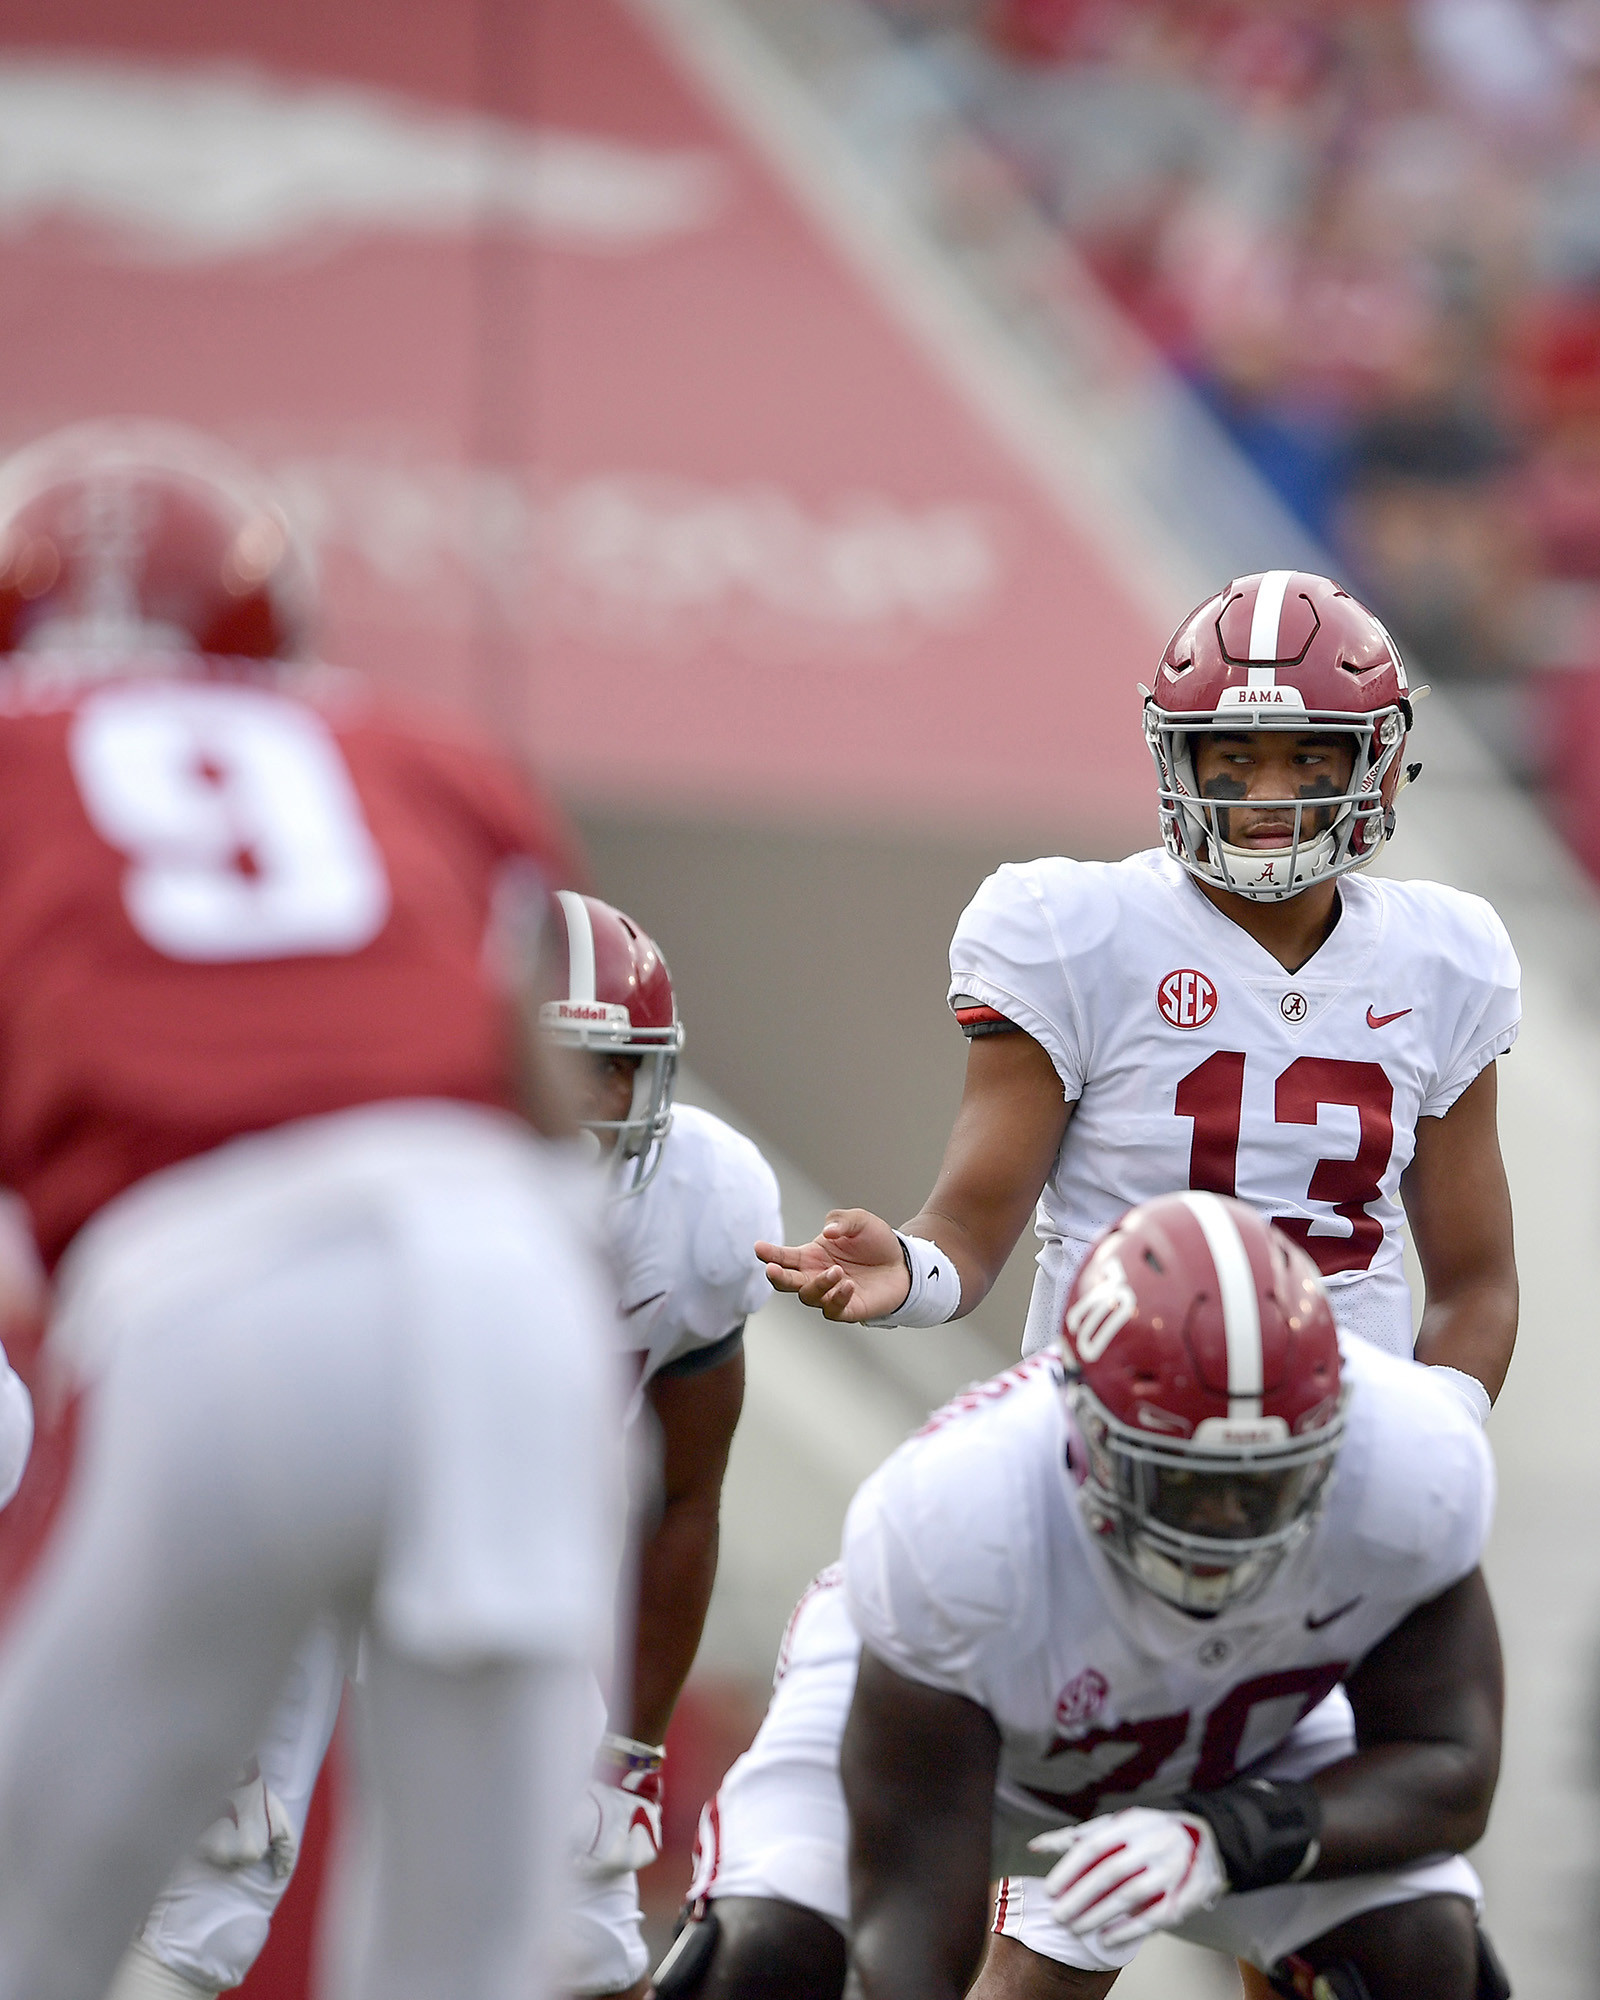 Alabama Crimson Tide quarterback Tua Tagovailoa (13) calling a play during the first half of the NCAA football game against the Arkansas Razorbacks at Razorback Stadium on Oct. 6, 2018, in Fayetteville, Ark. Alabama defeated Arkansas 65-31. (Photo by Lee Walls)